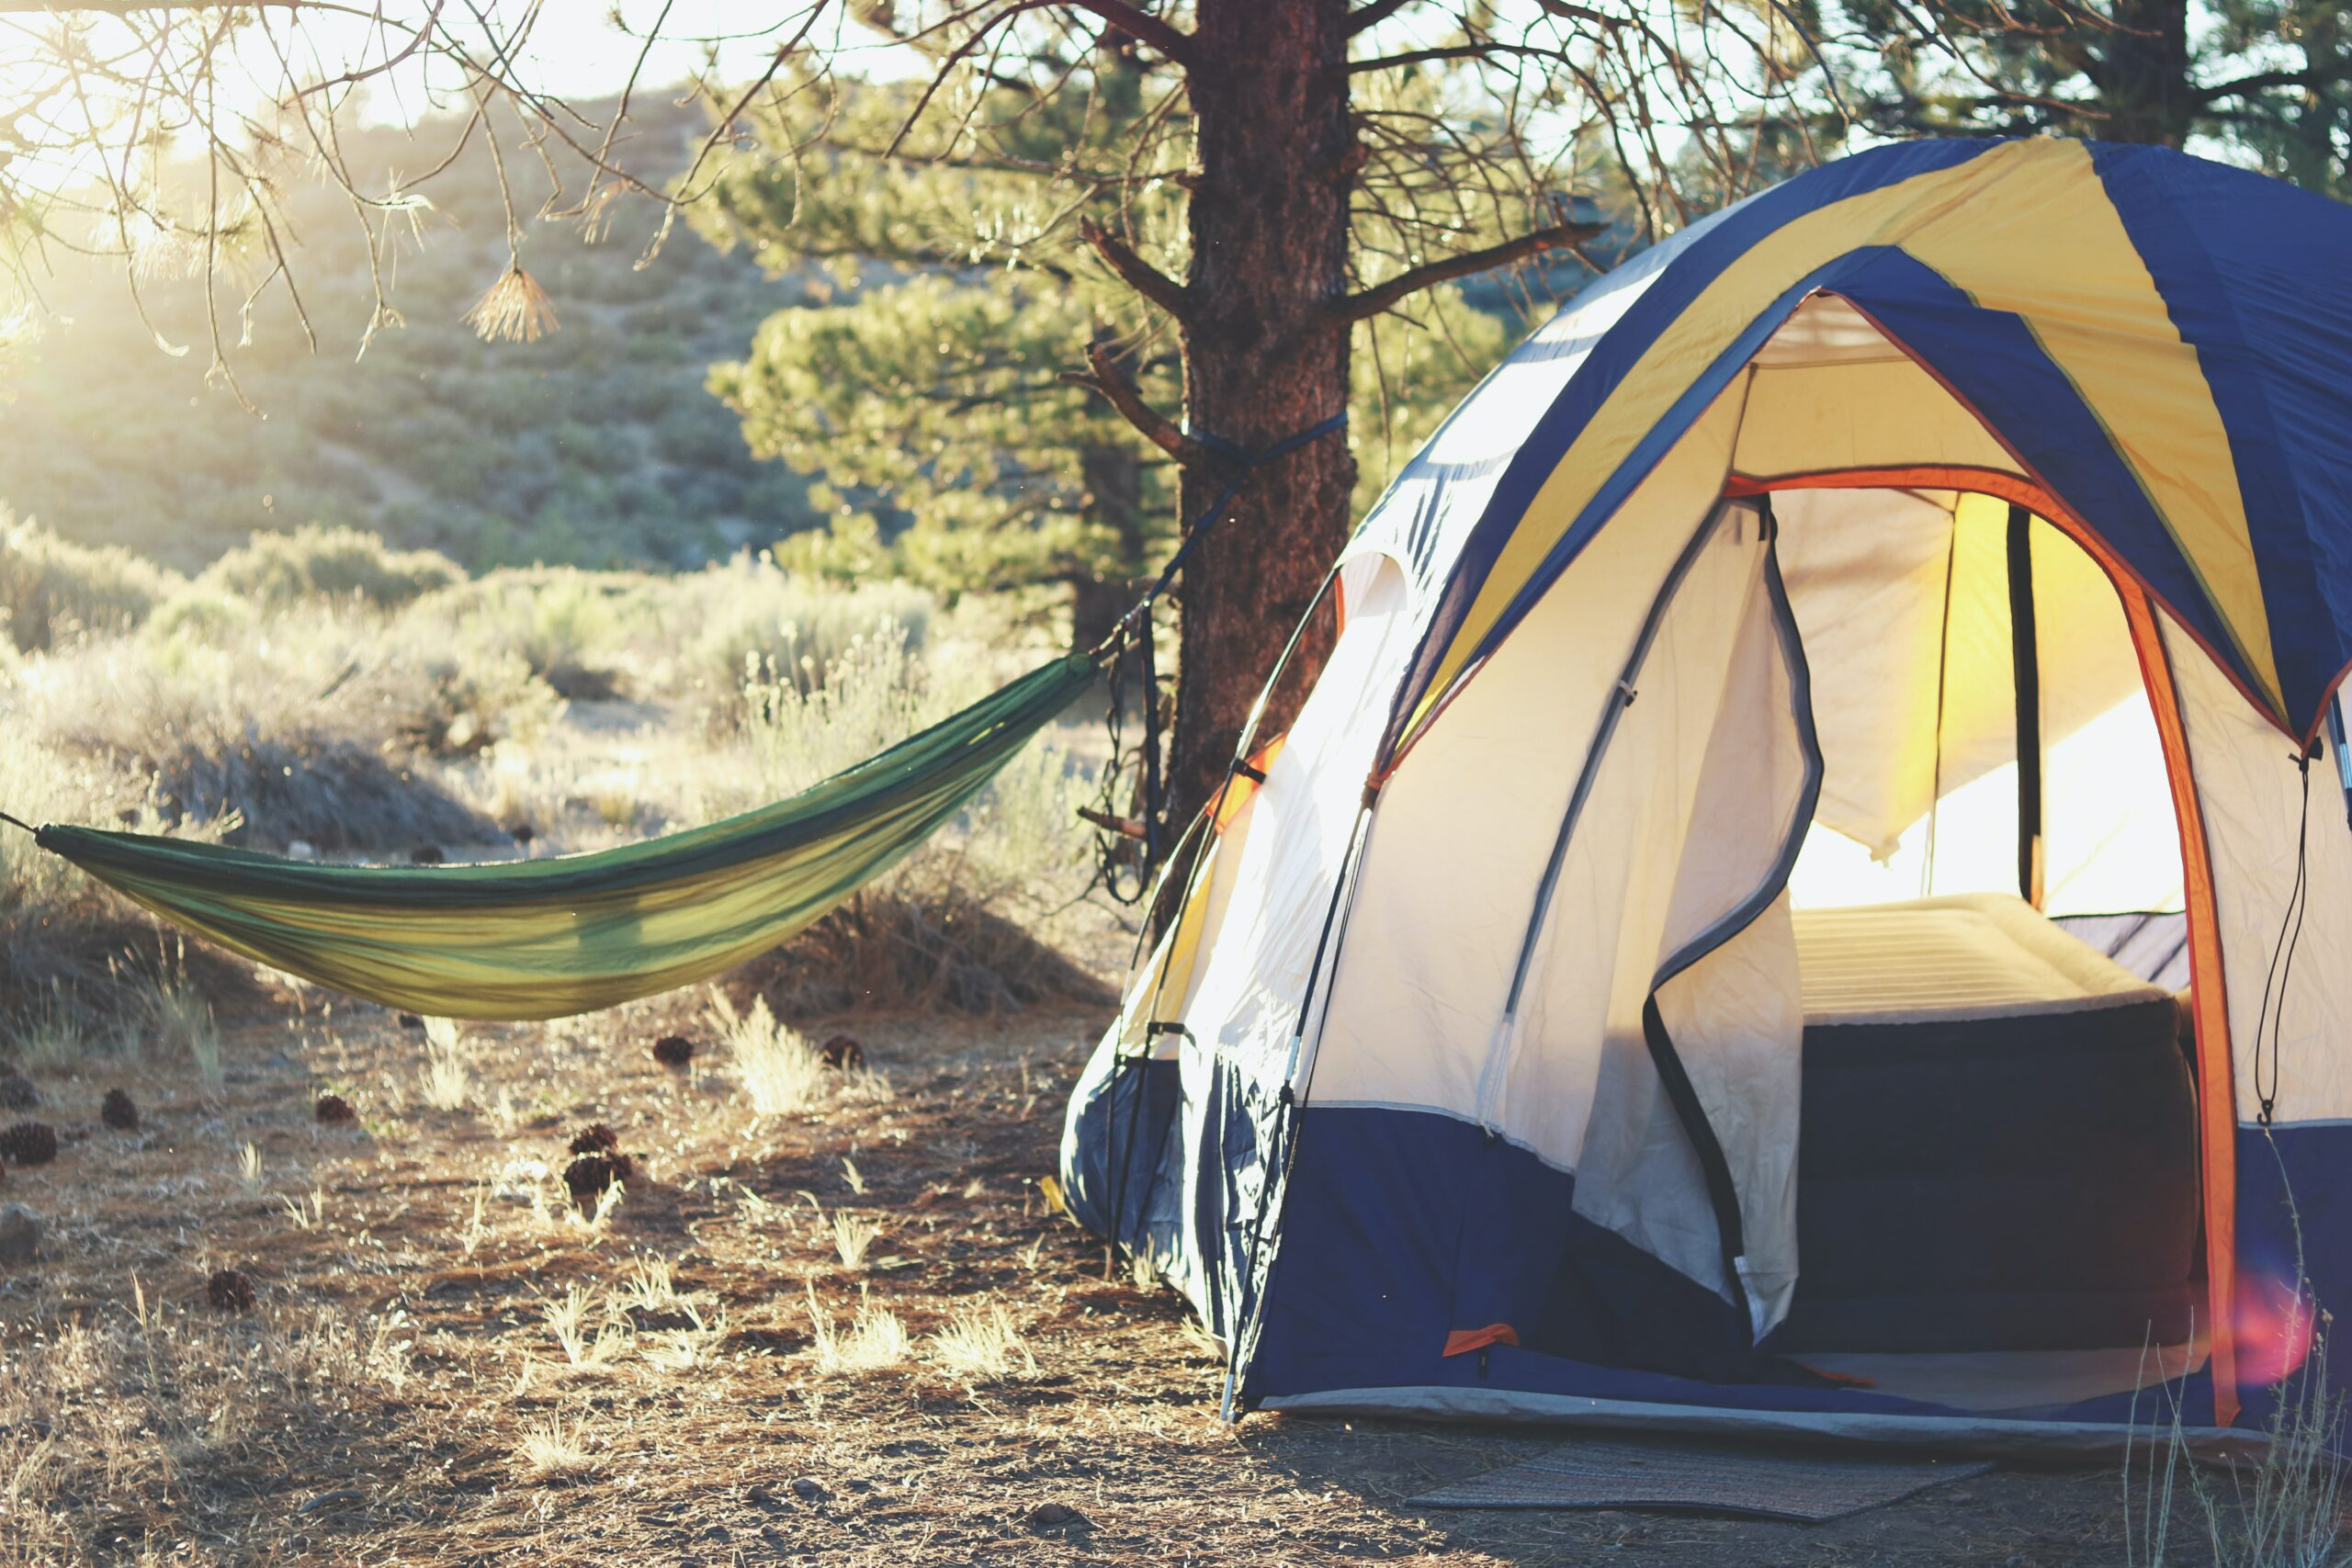 Let's plan our camping trip with the nicest Amazon products